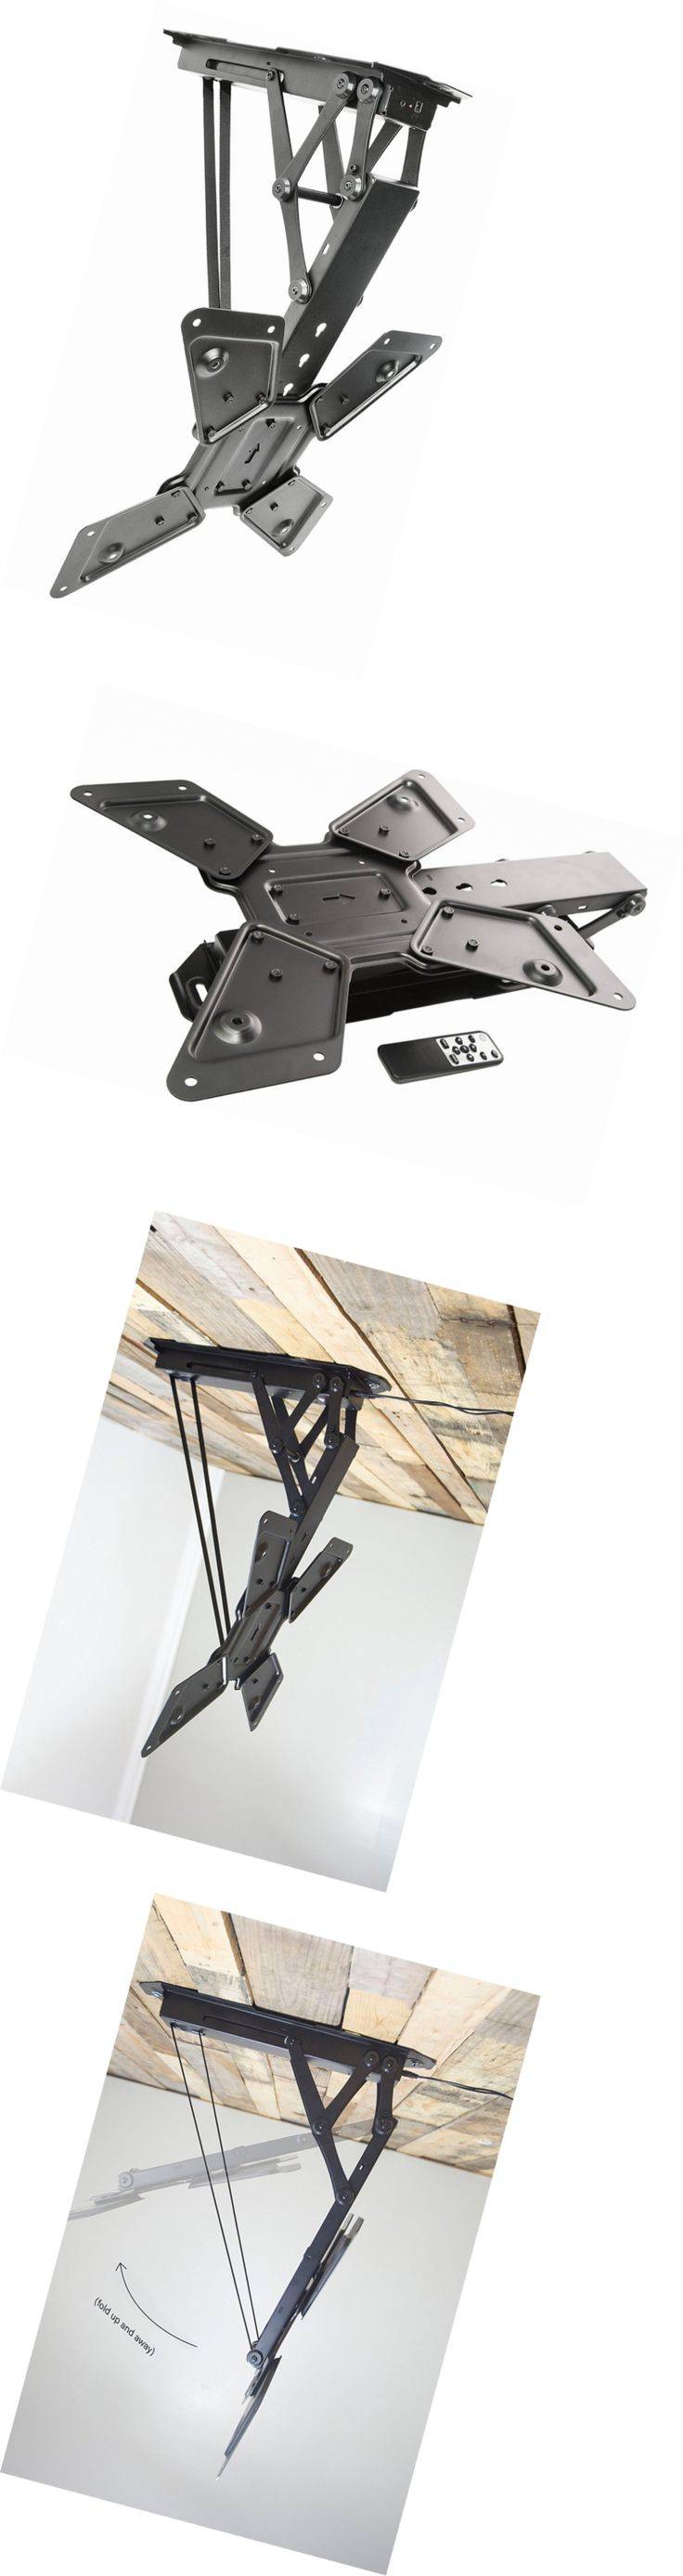 17 best ideas about tv mounting on pinterest mounted tv for Vivo electric motorized flip down pitched roof ceiling tv mount